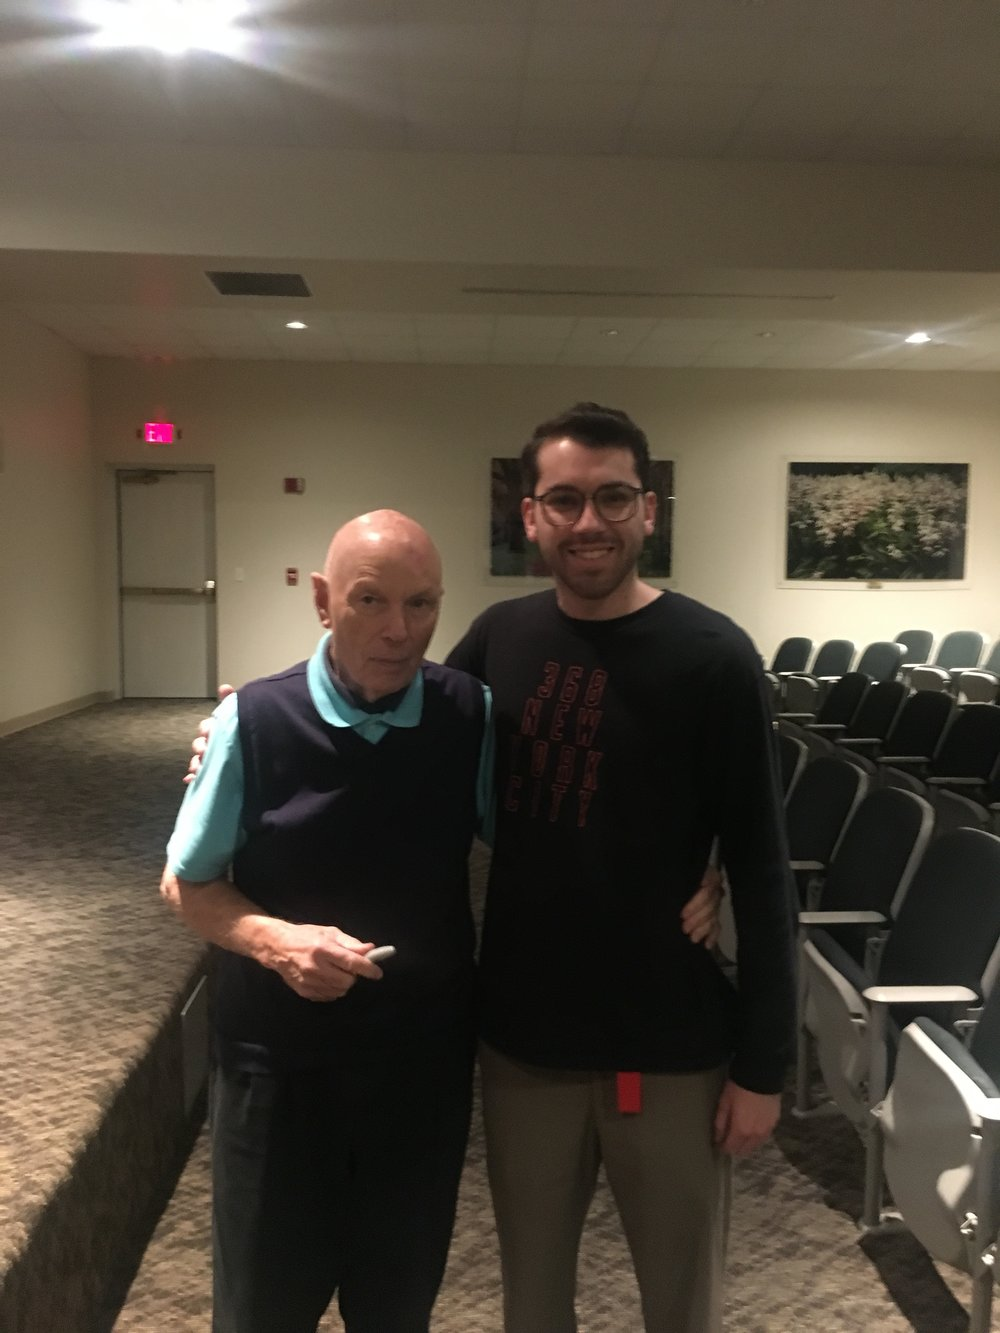 Story Musgrave and the Author, following the former's presentation.